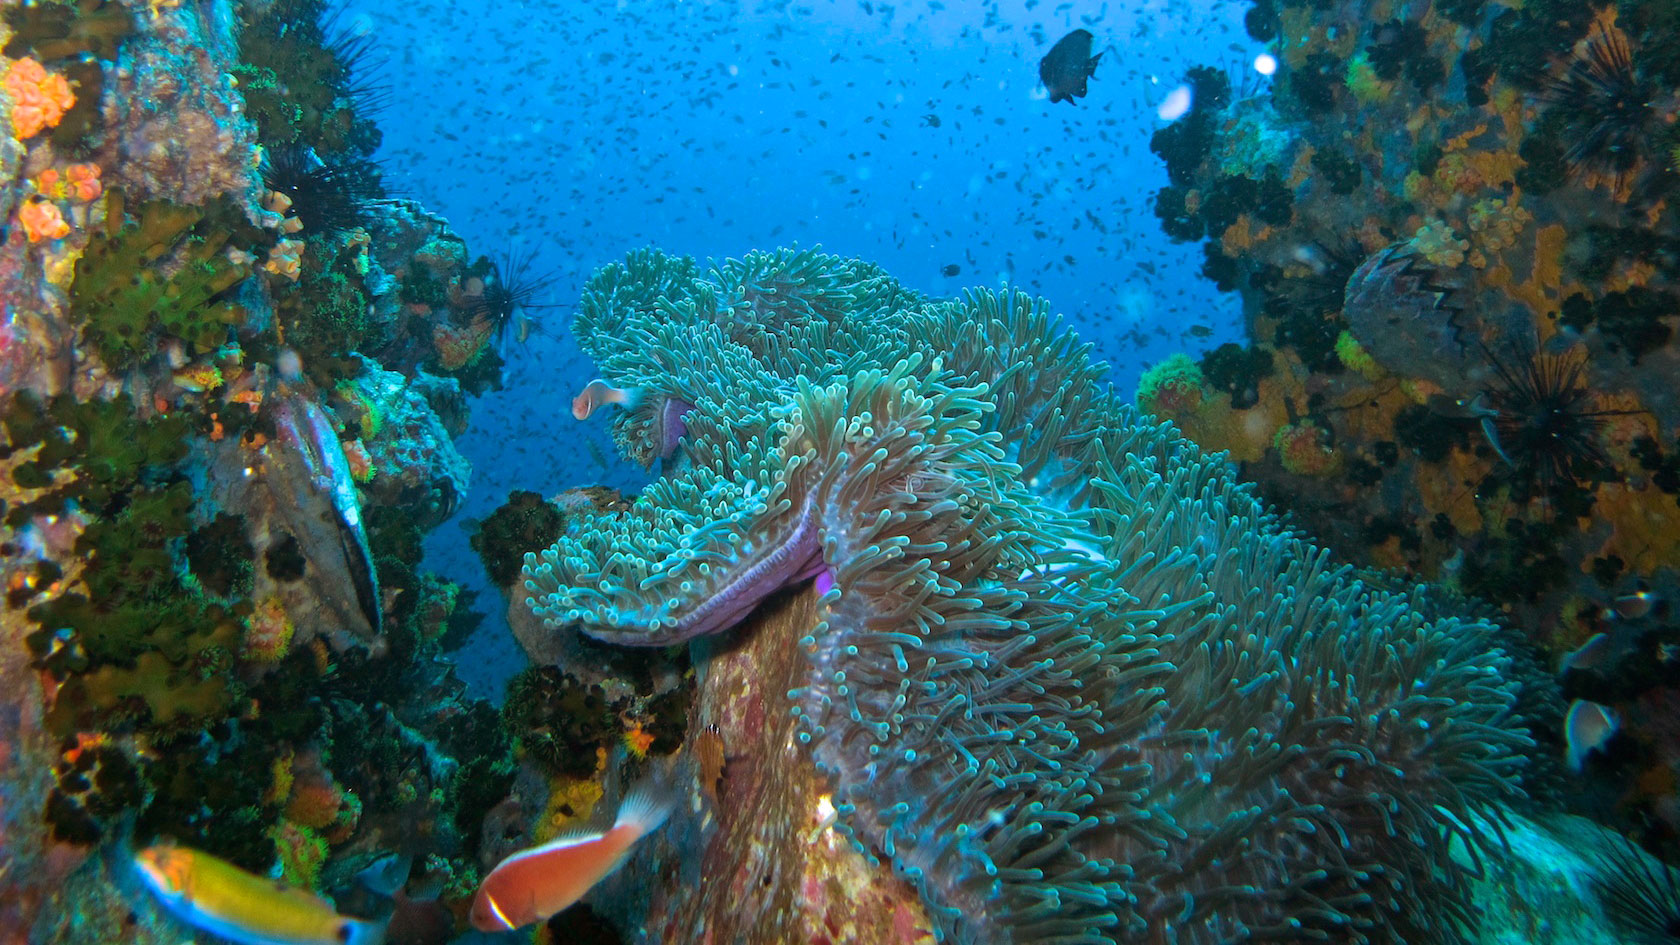 Koh tao dive sites koh tao a complete guide - Koh tao dive sites ...